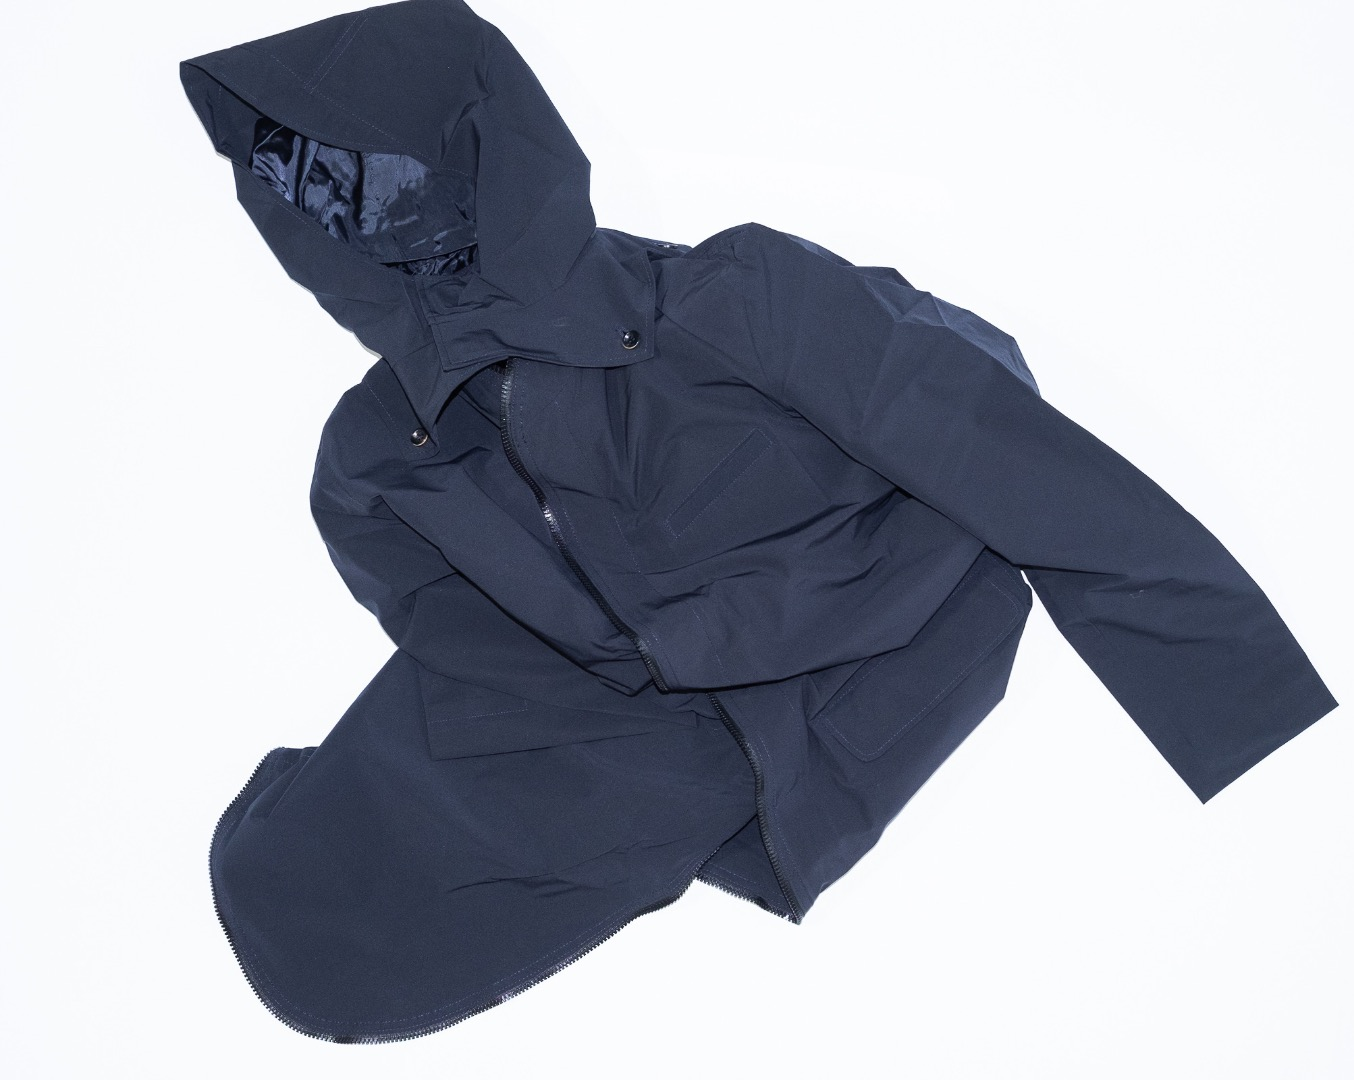 Raincoat - Navy Blue